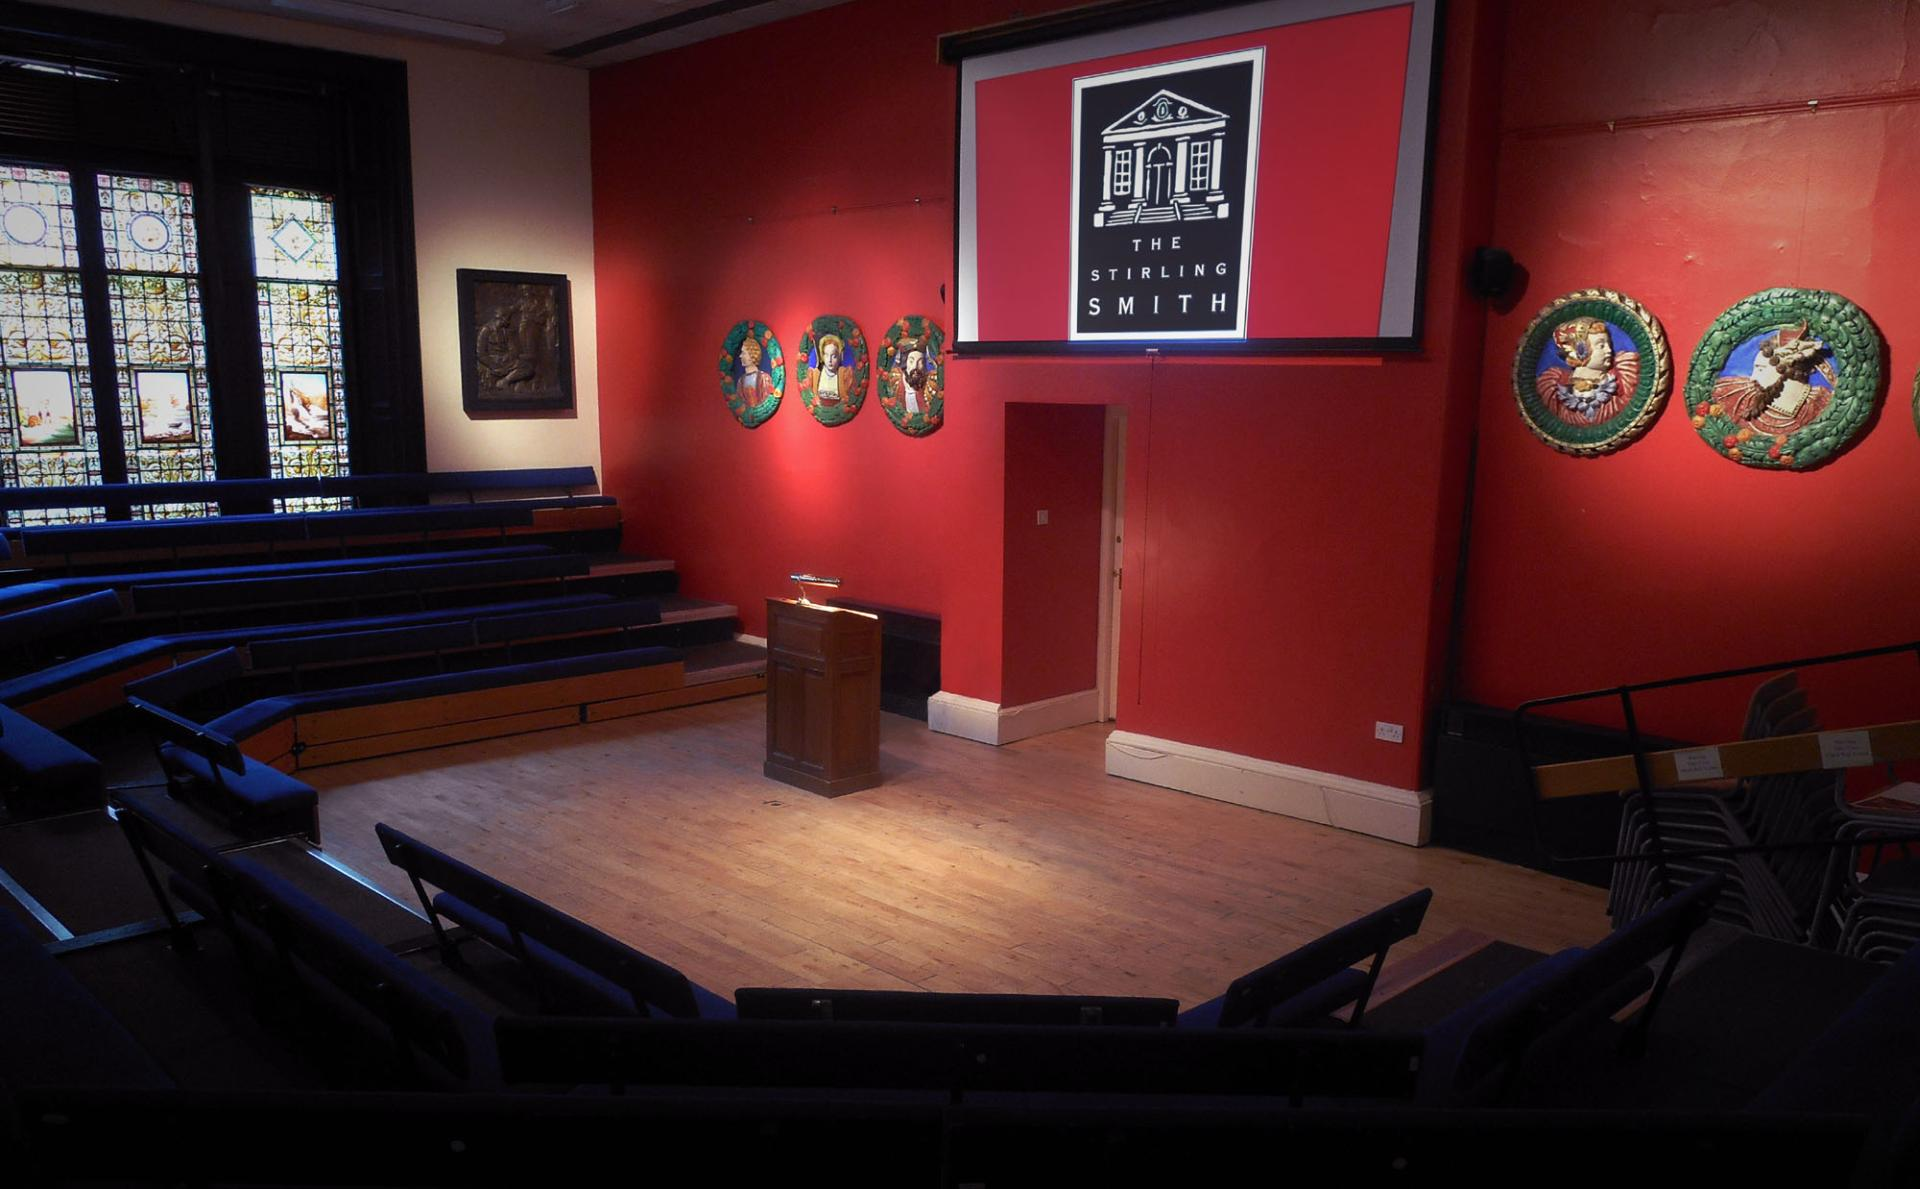 image of the lecture theatre of the stirling smith art gallery and museum